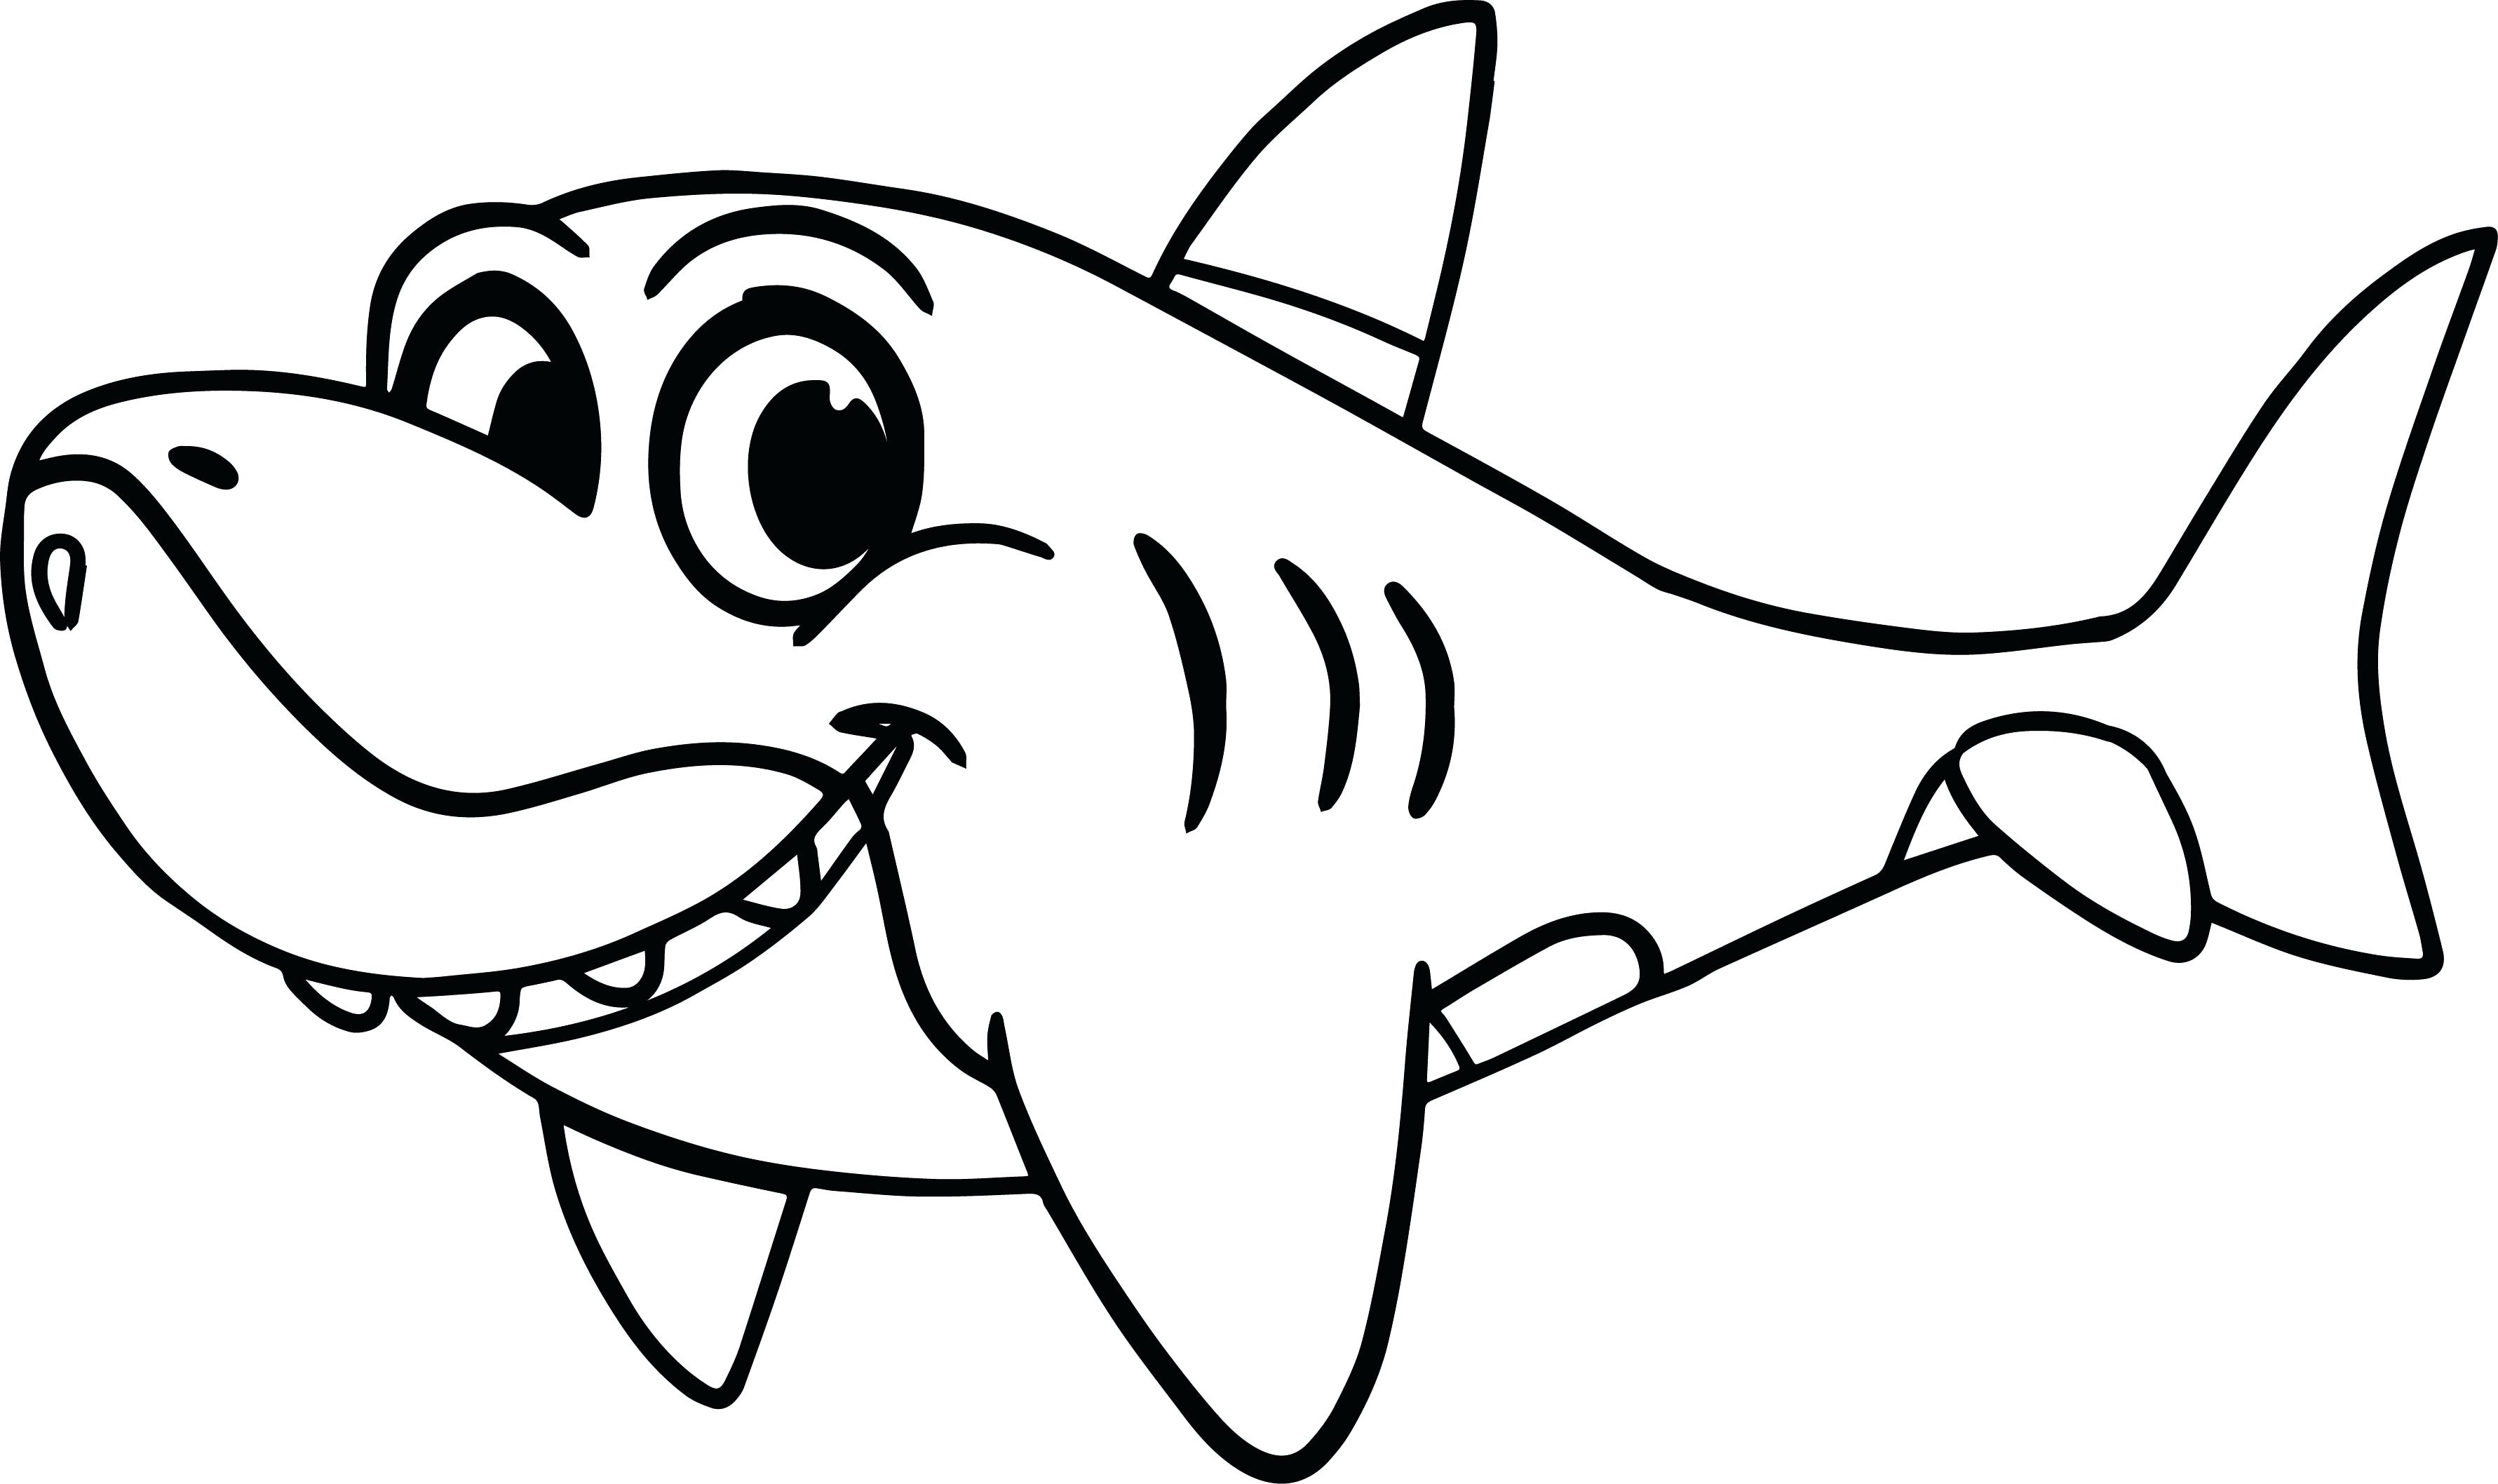 Great White Shark Coloring Pages to Print Free Coloring